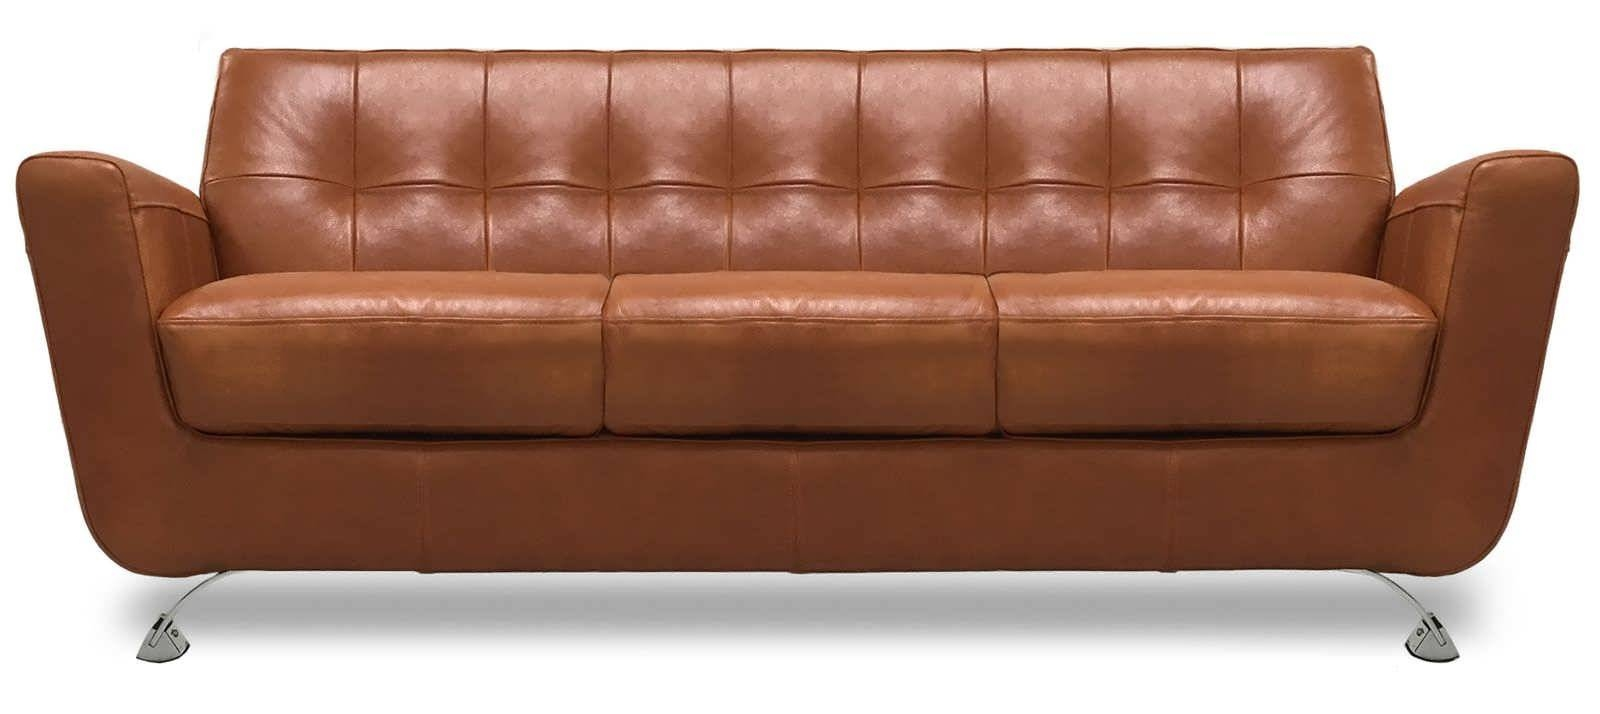 Sofa : Small Sofas For Small Rooms Grey Deep Sofa Small Love Couch throughout Narrow Depth Sofas (Image 11 of 15)